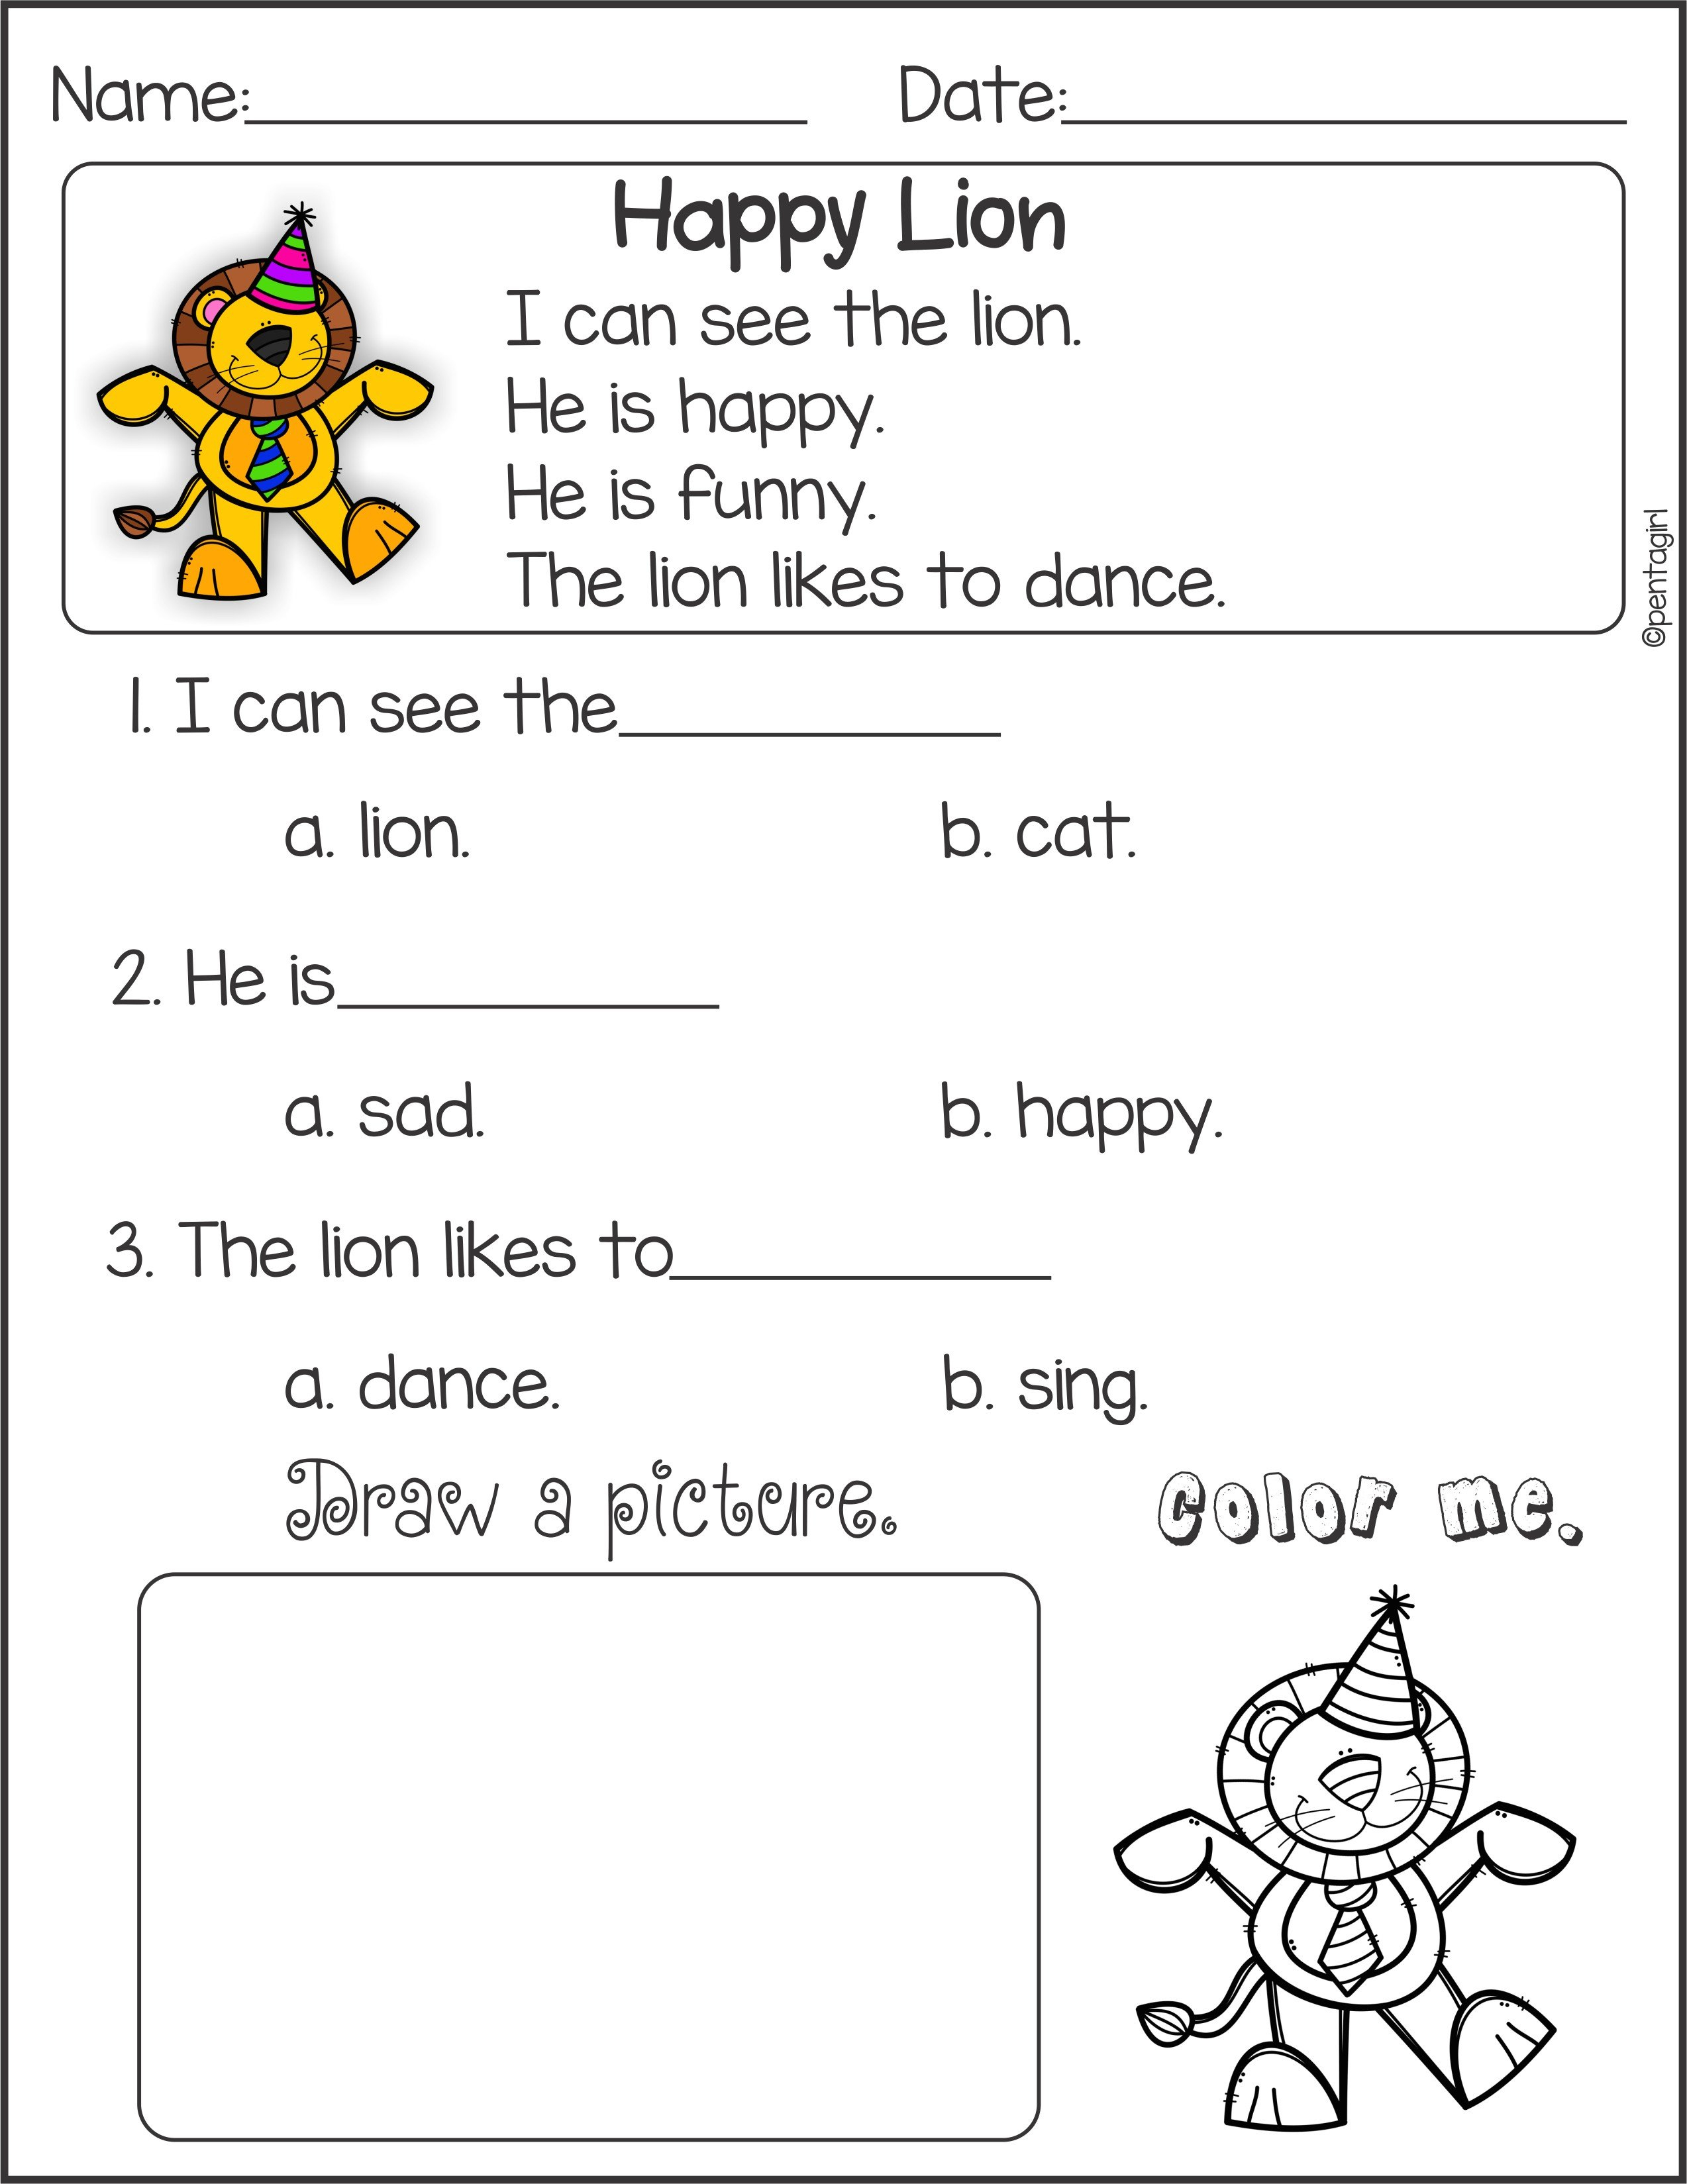 Common Core Subtraction Worksheets Page 3  Free Printable Reading Or Comprehension Worksheets For Grade 1 Free